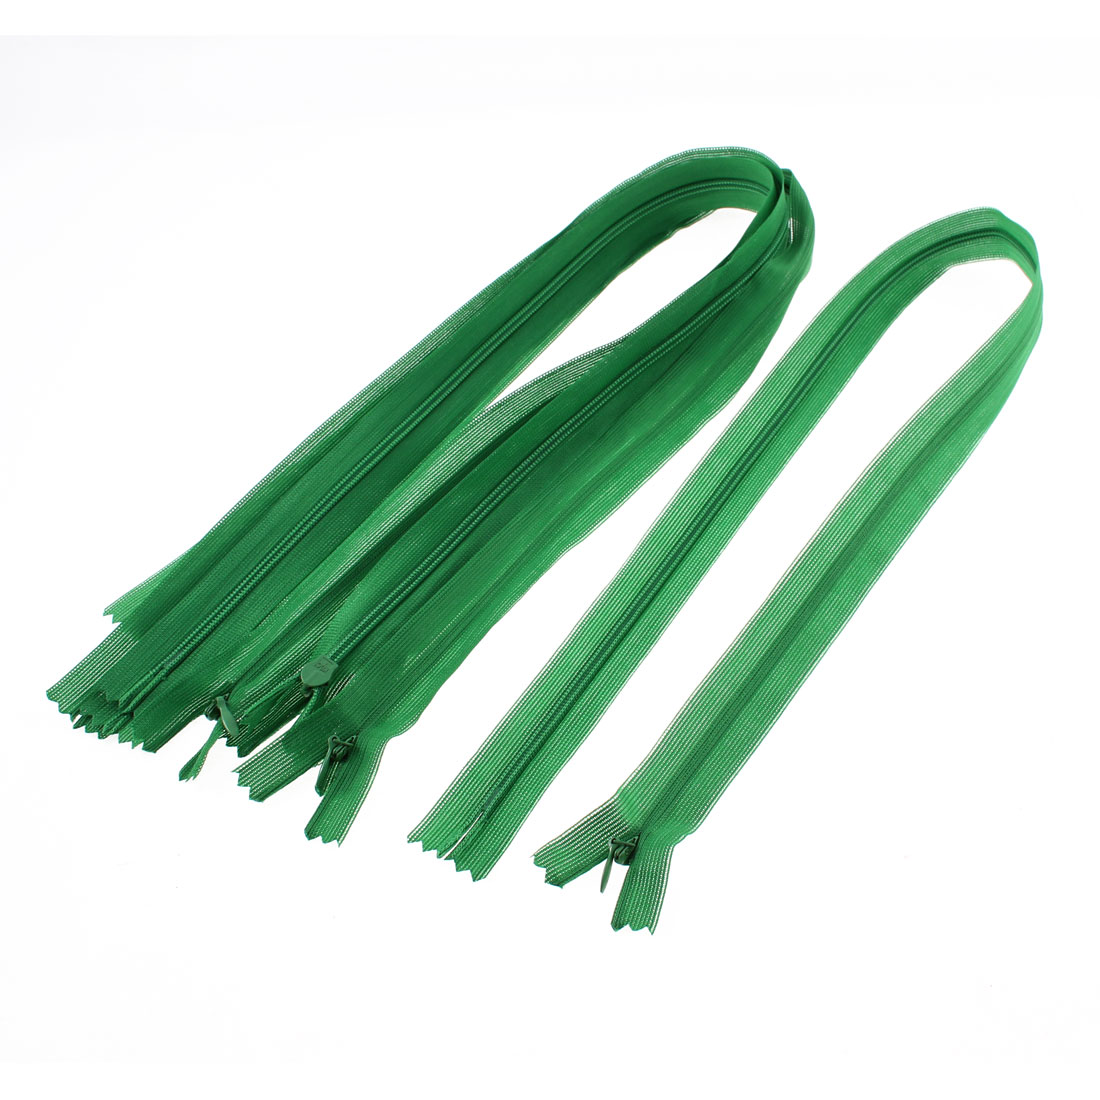 5 Pcs Green Nylon Dress Zippers Tailor Sewing Tools 24-inch